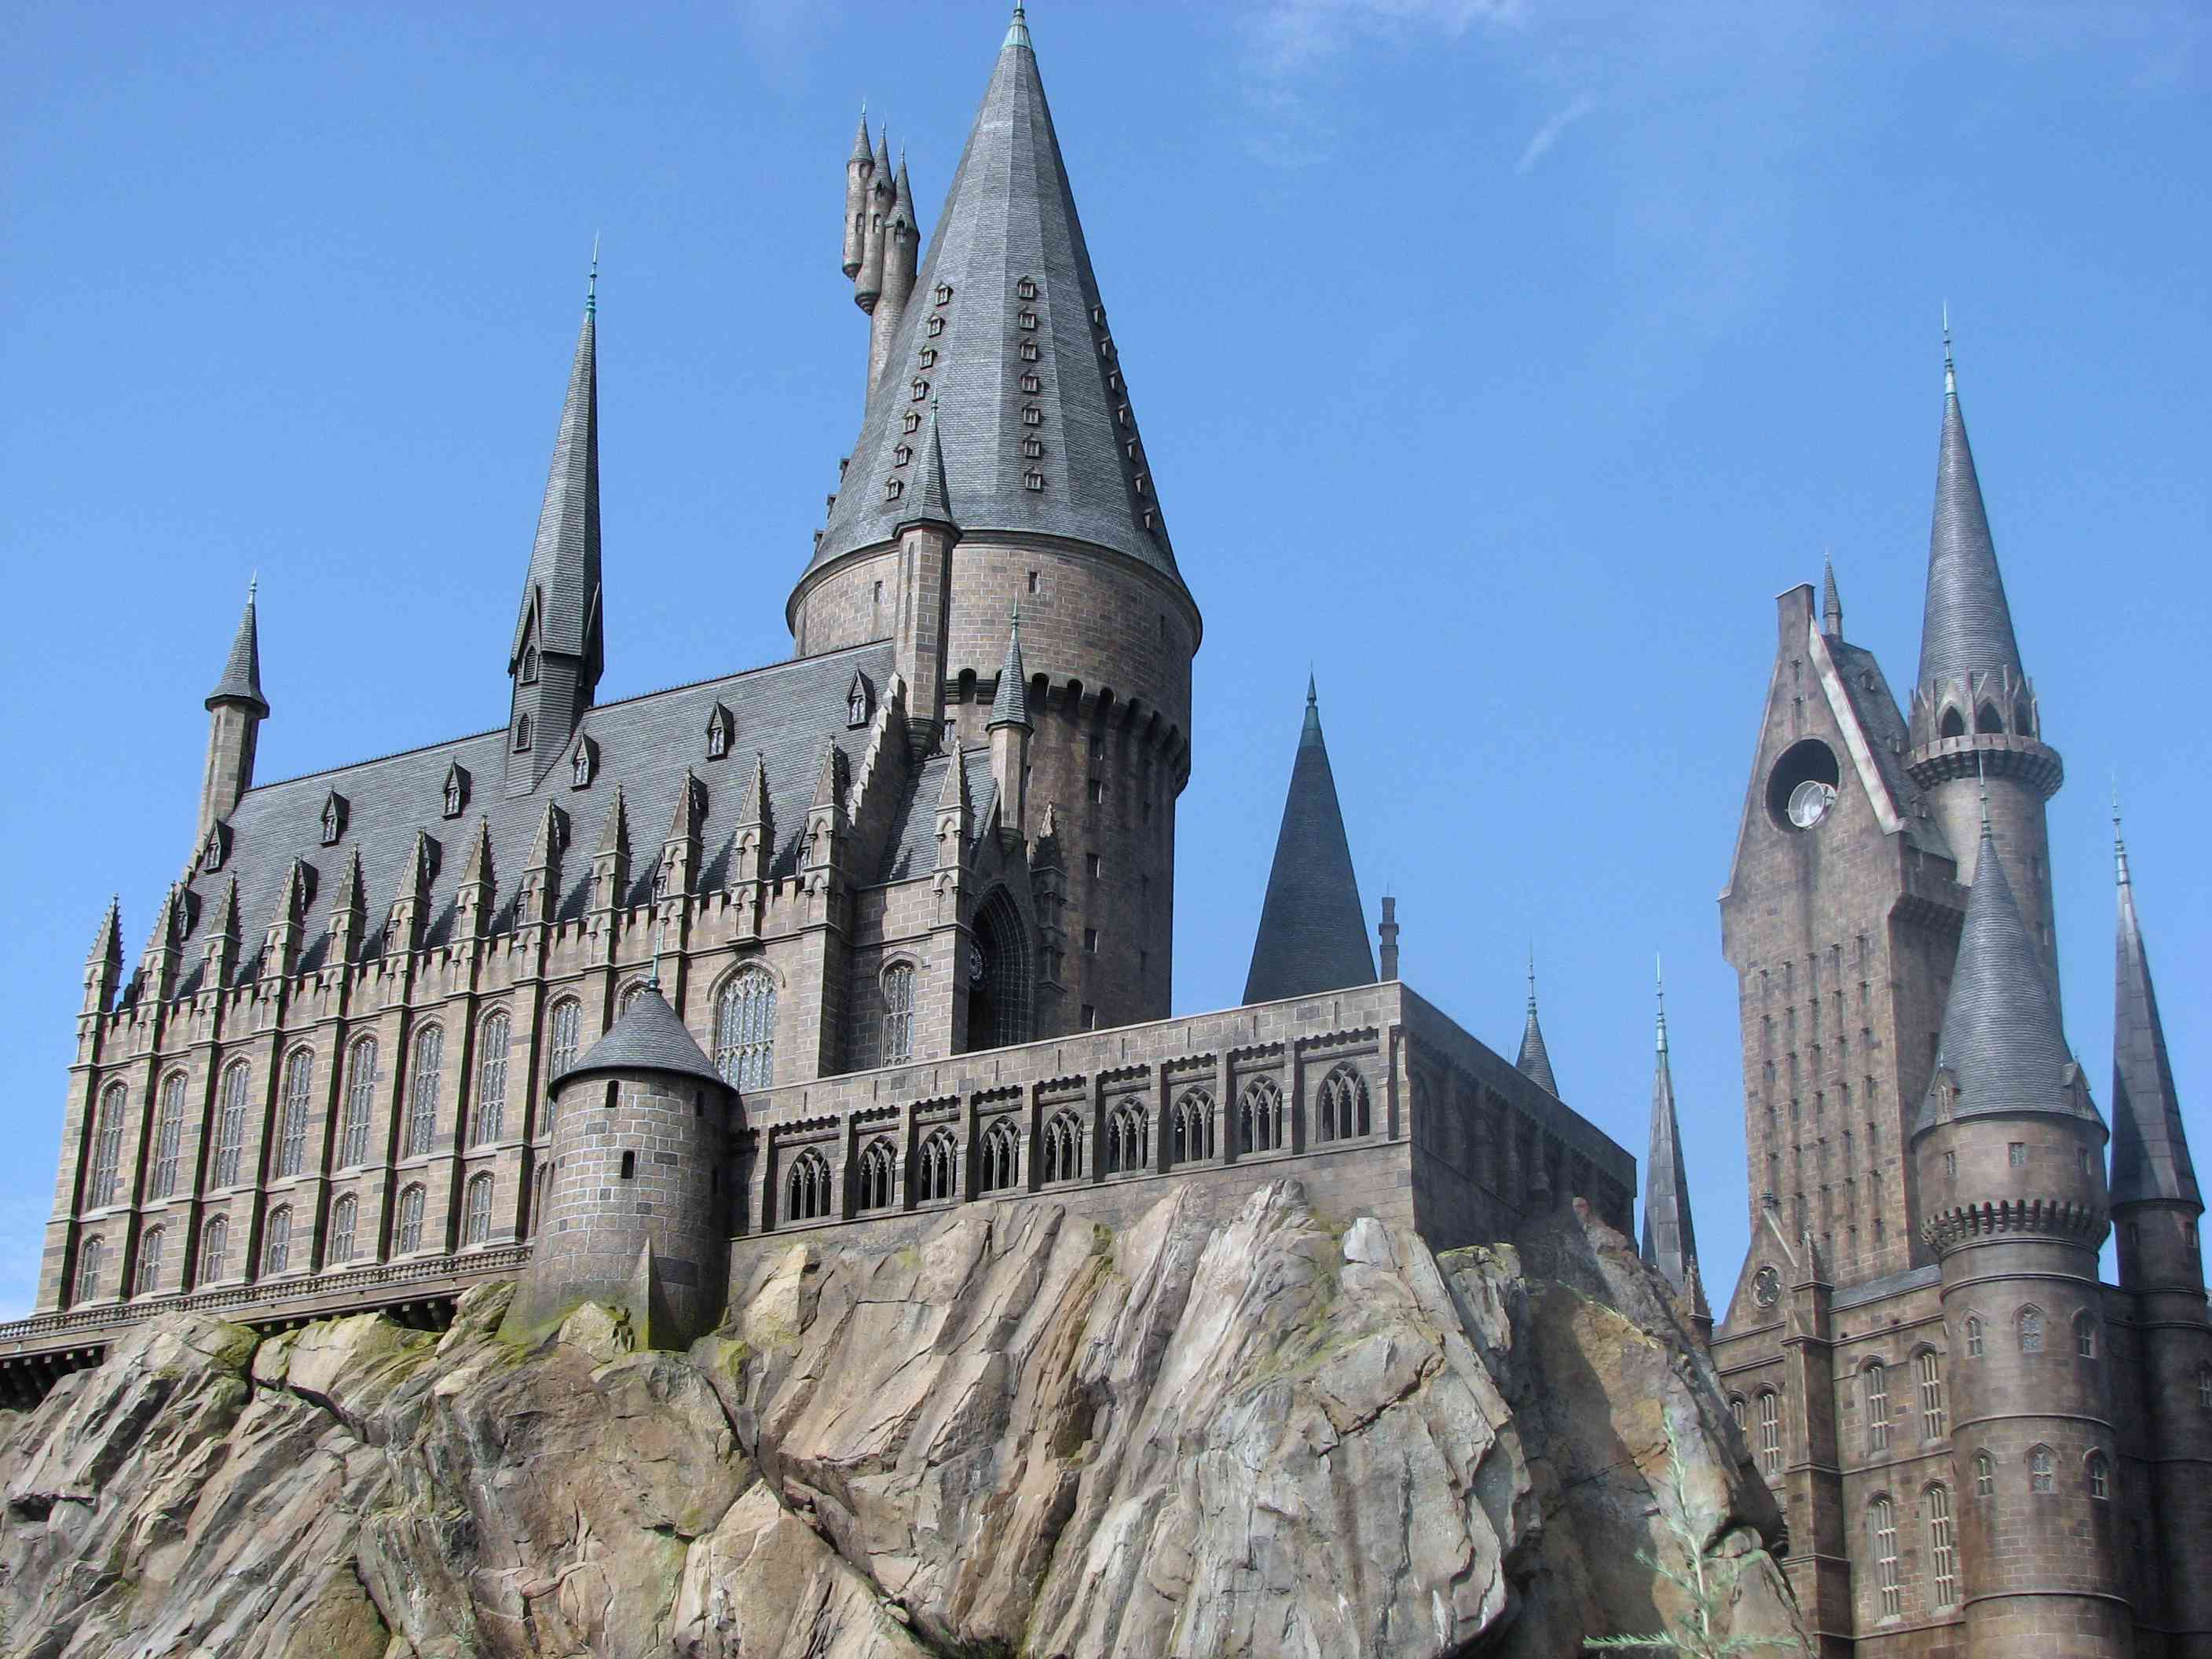 Hogwarts Castle looms above the Wizarding World of Harry Potter at Universal Orlando.